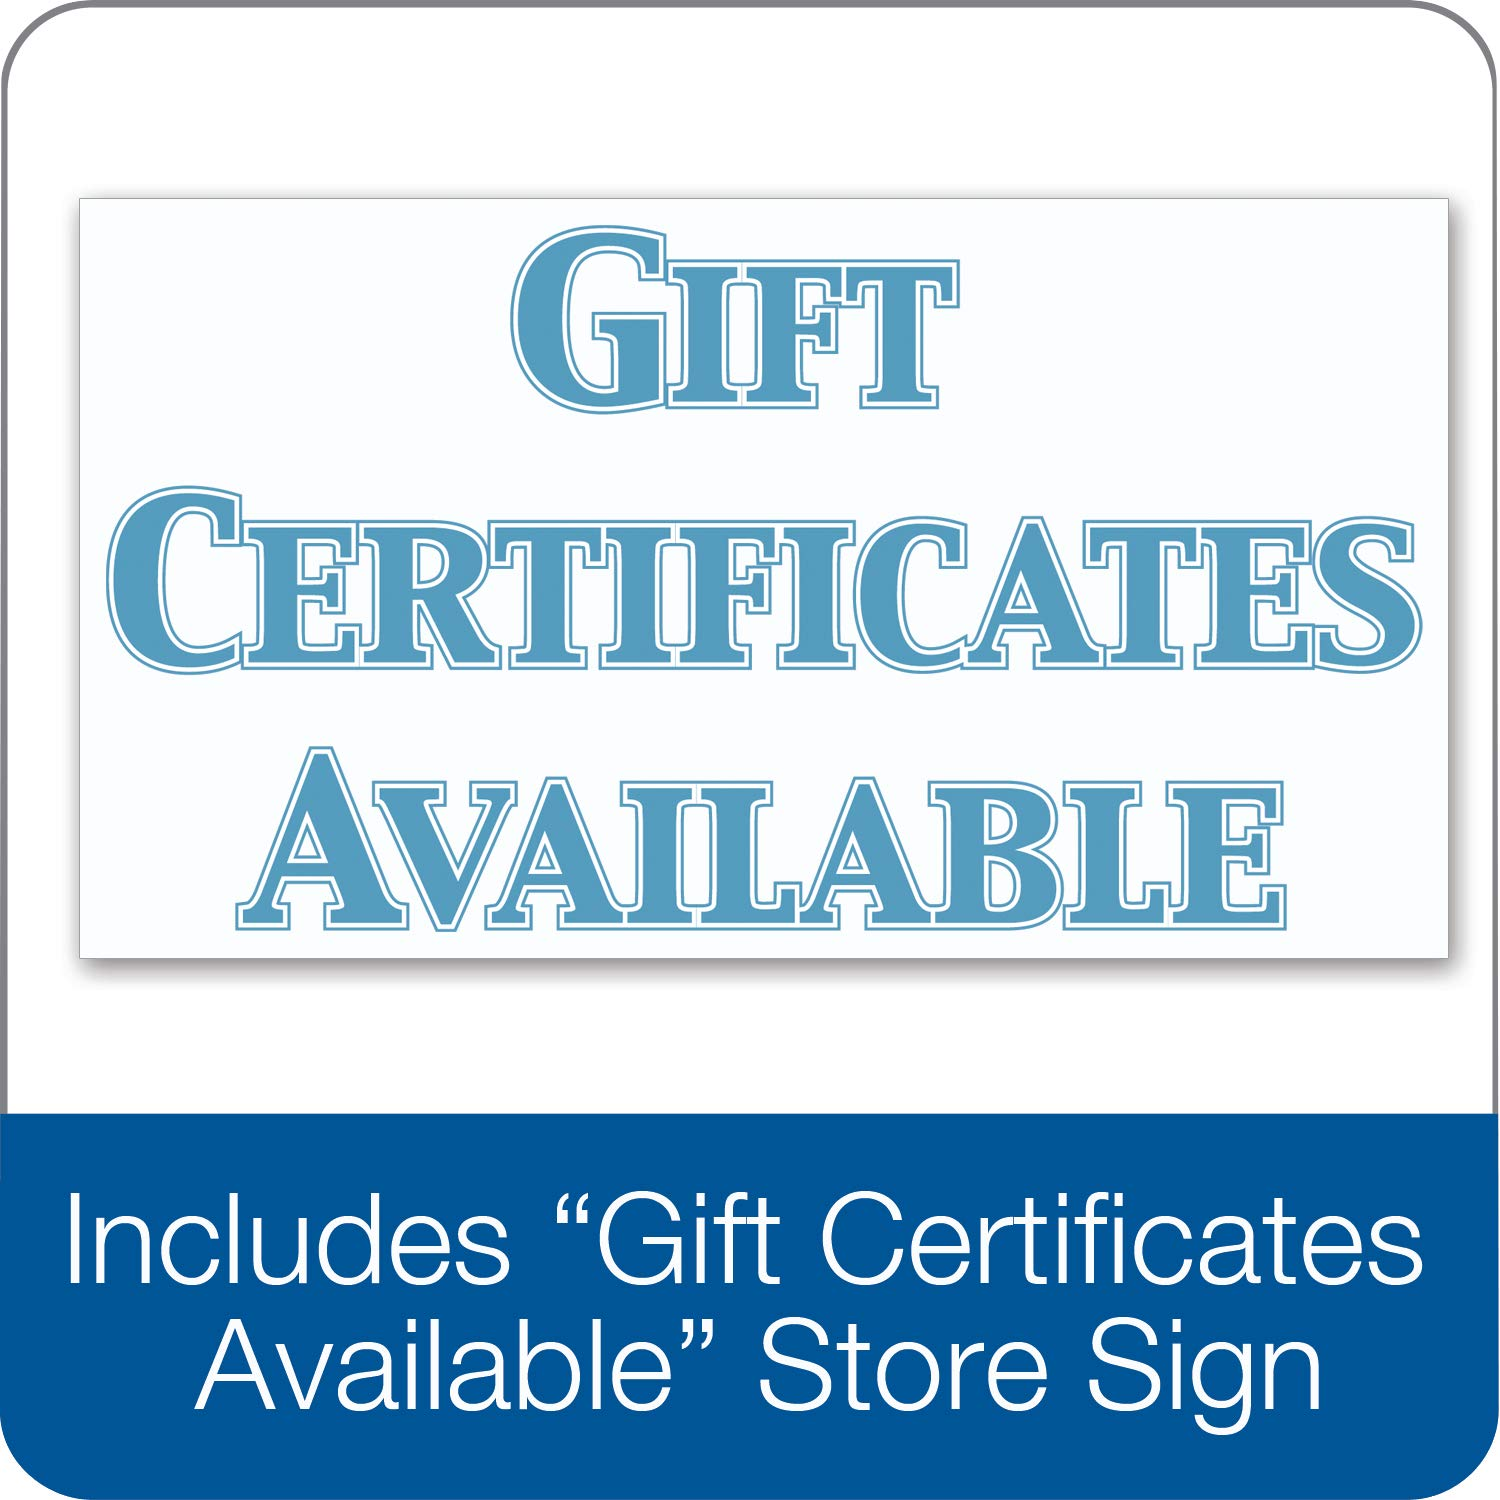 adams gift certificate cards 20 folded cards and envelopes 6 25 x